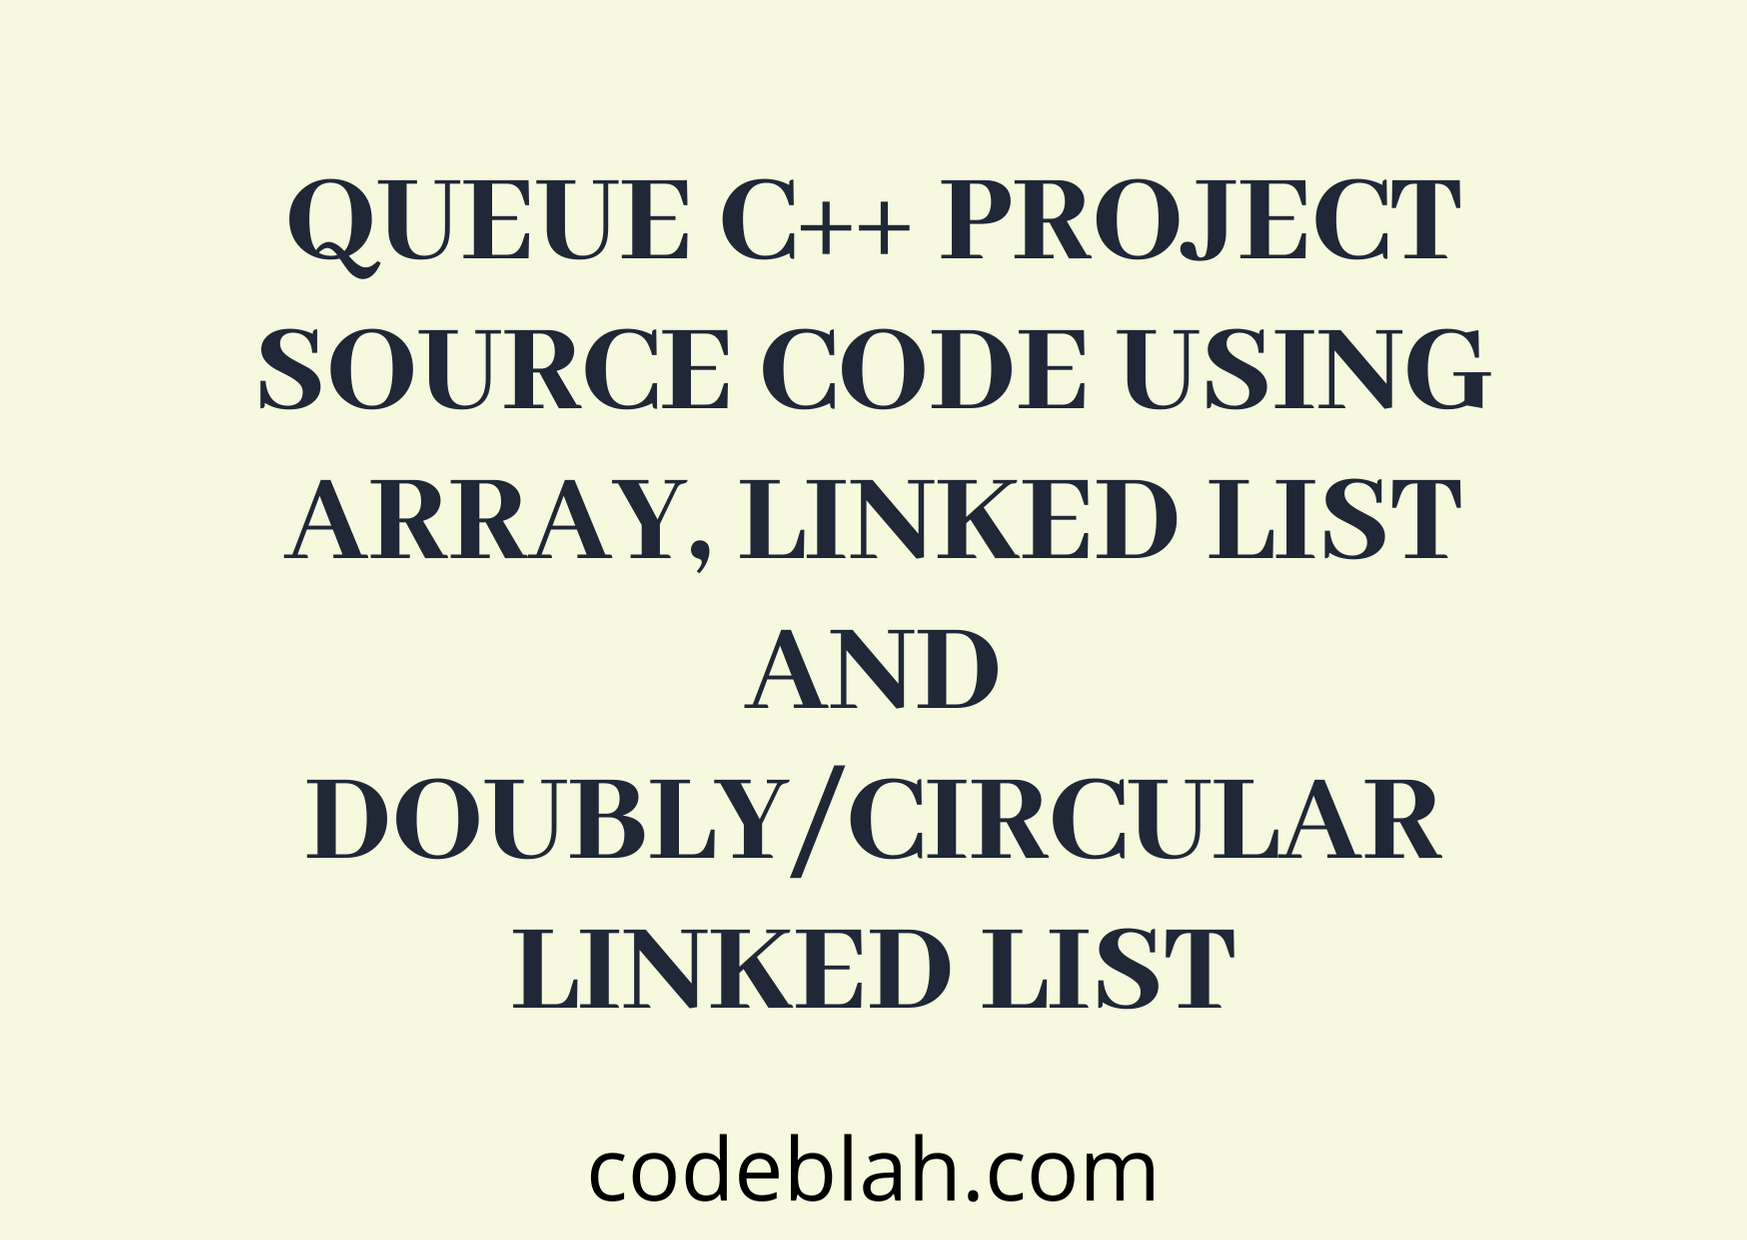 C++ Queue Project Source Code Using Array,Linked list and Doubly/circular Linked List